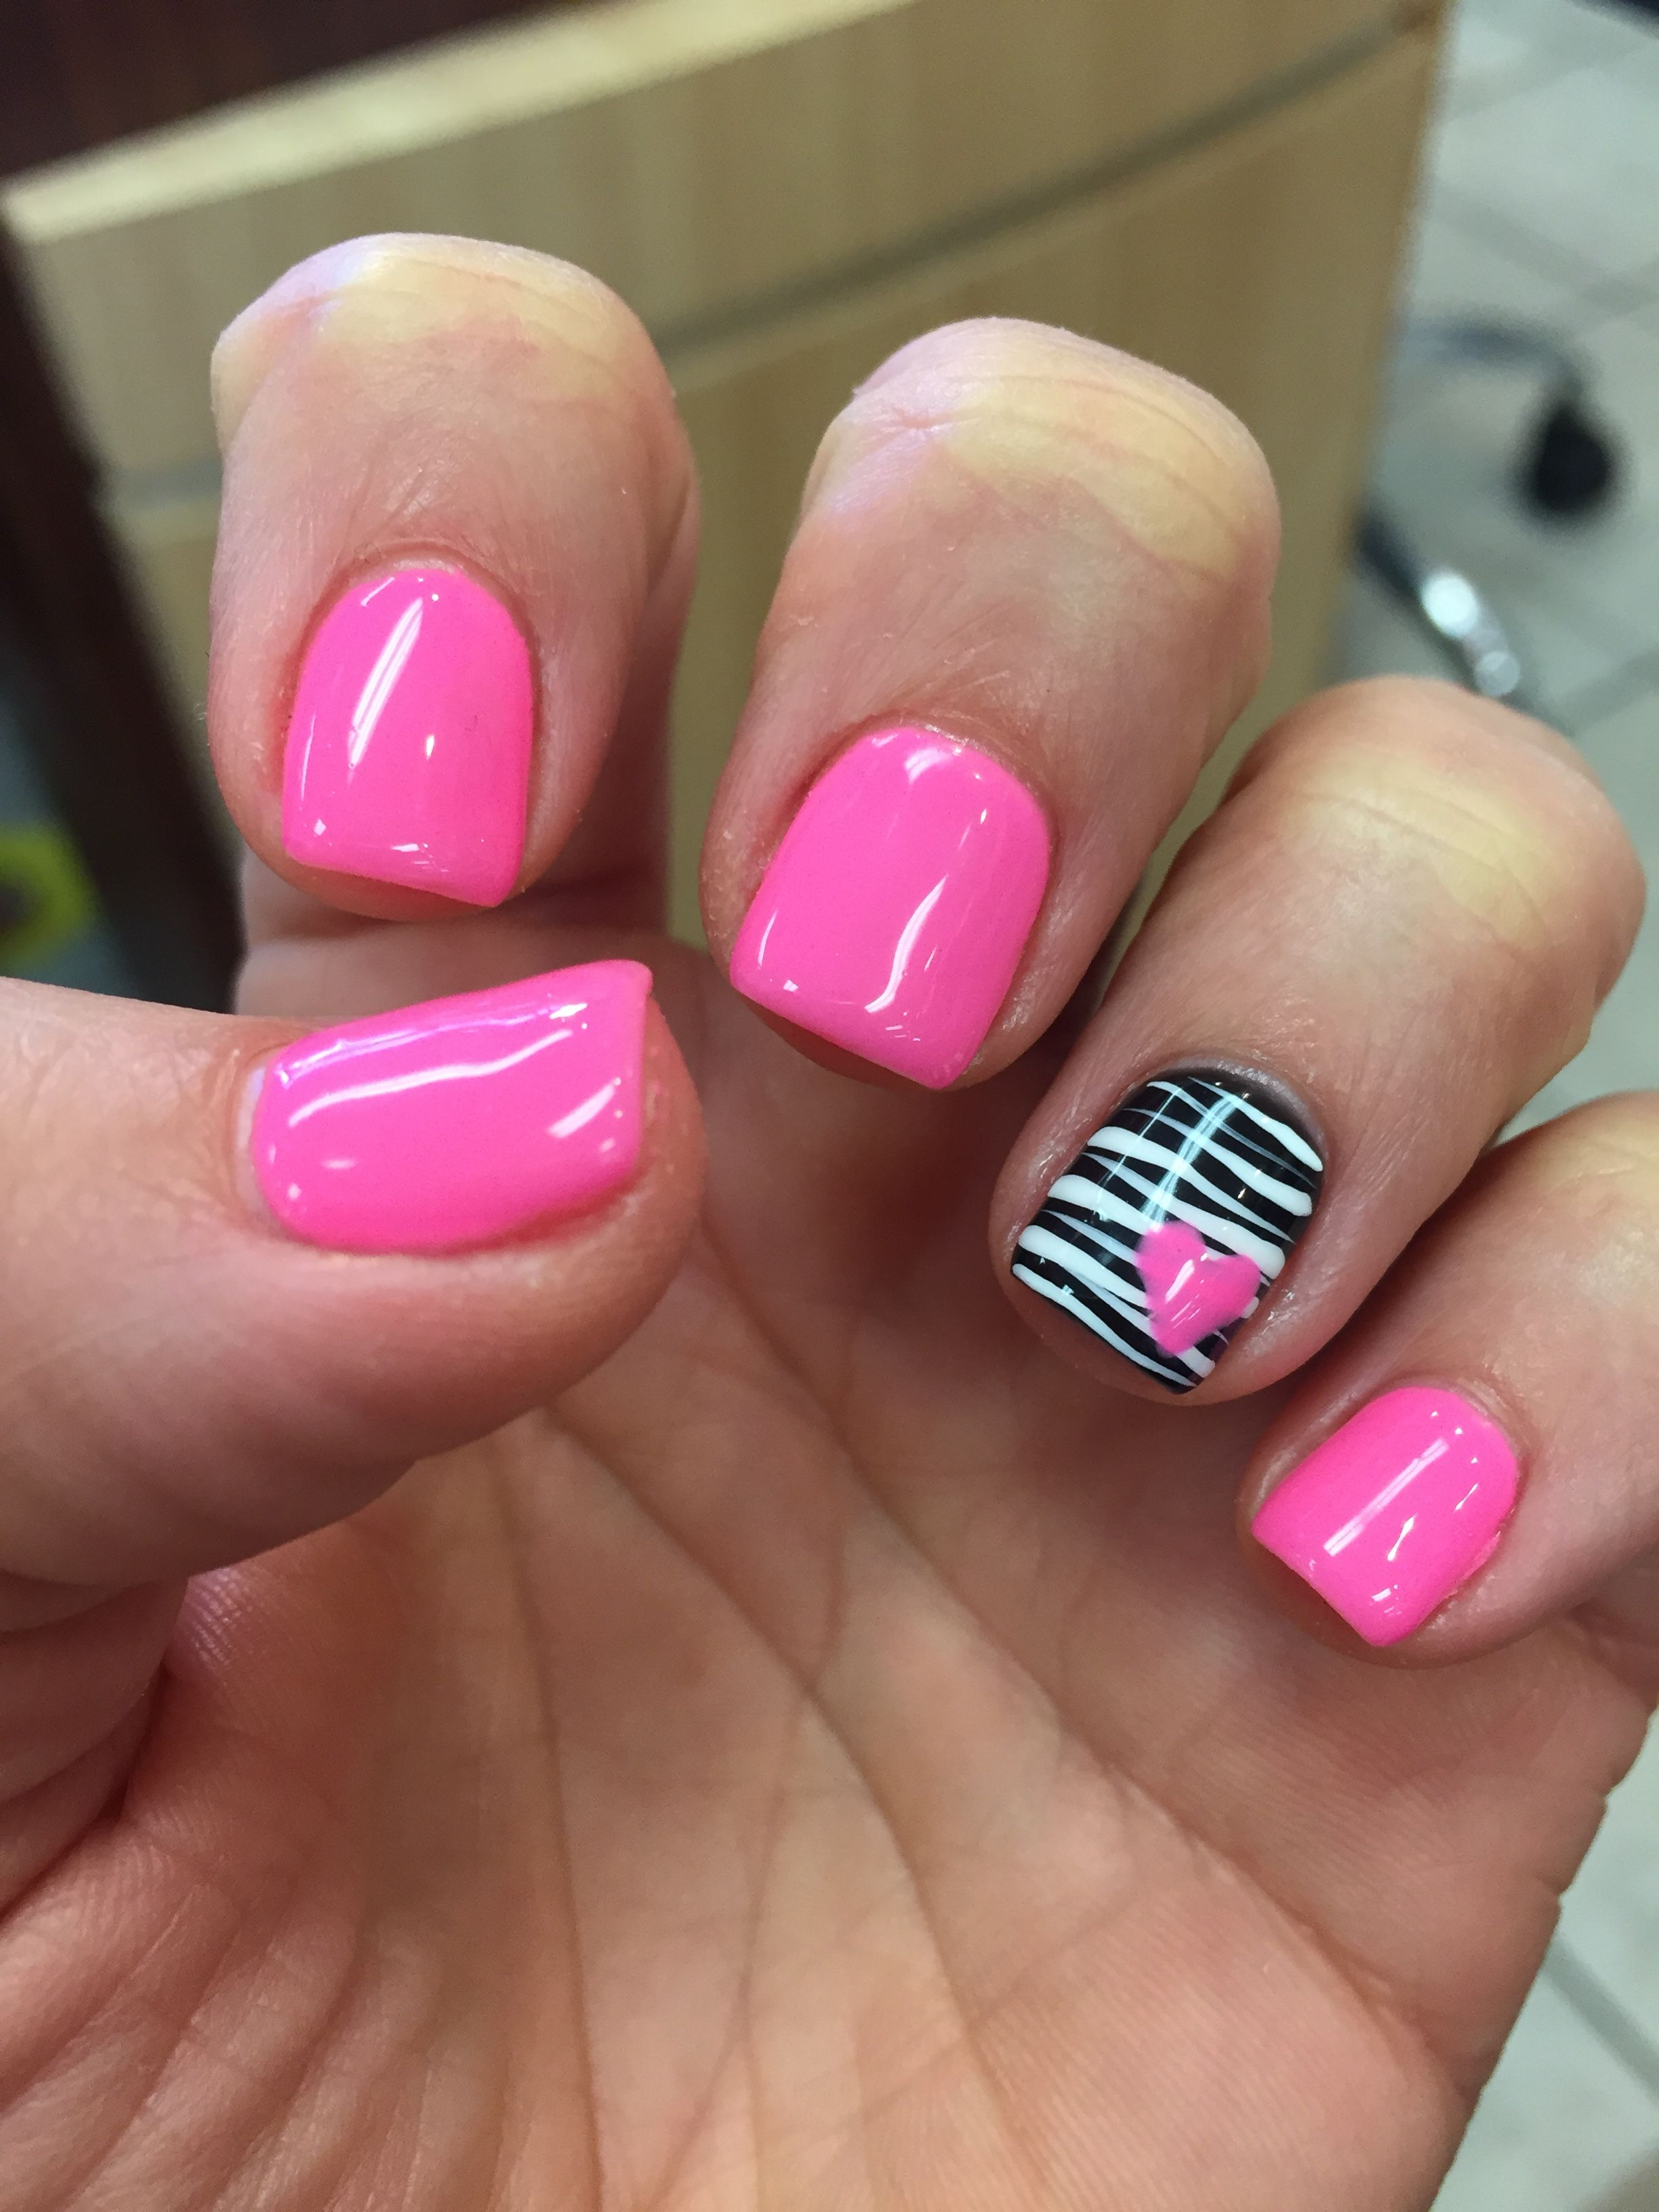 Gel Mani Shellac Zebra Pink Valentine Nails Polish February With Images Gelove Nehty Design Nehtu